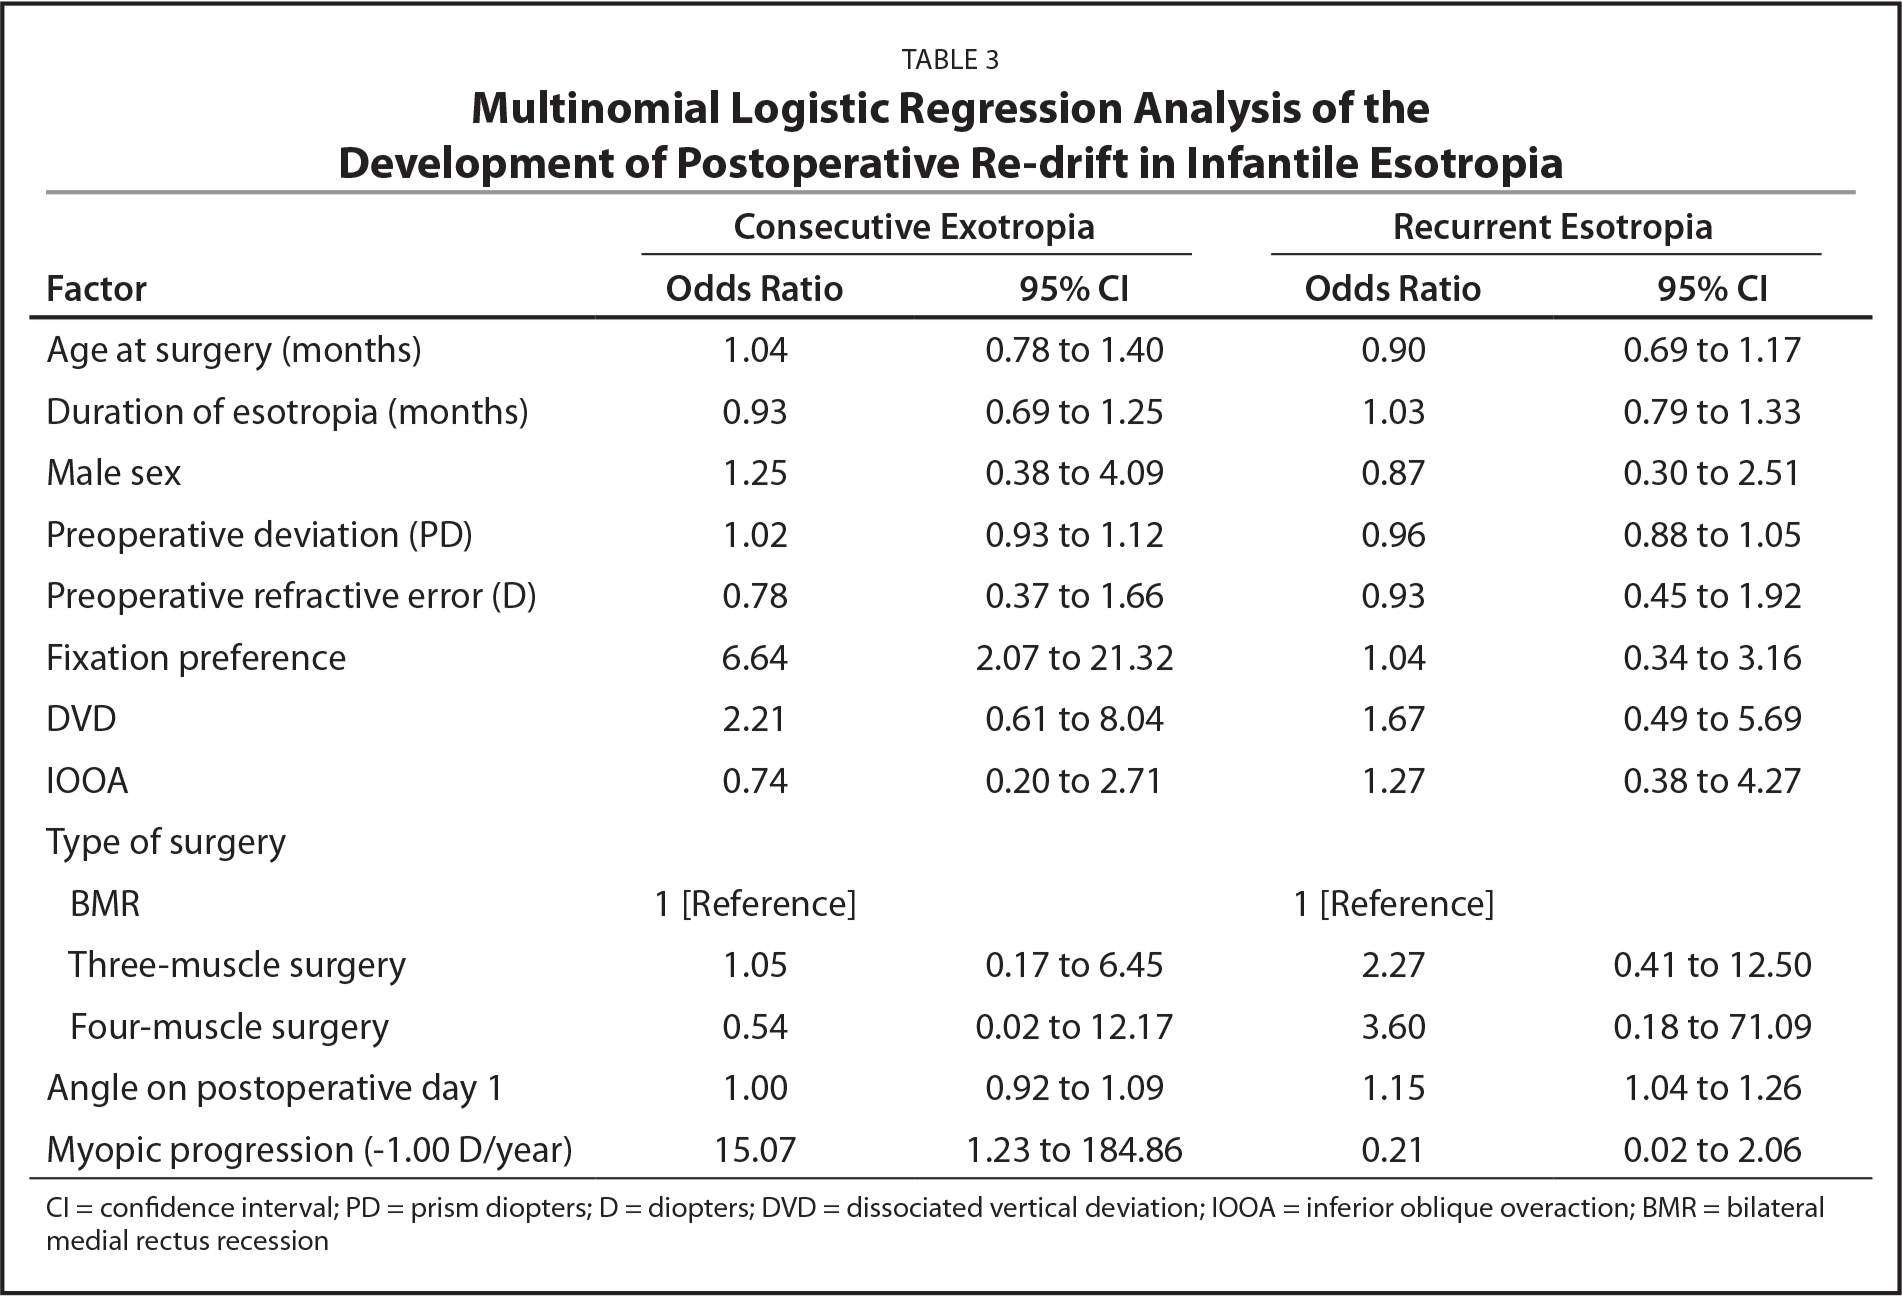 Multinomial Logistic Regression Analysis of the Development of Postoperative Re-drift in Infantile Esotropia